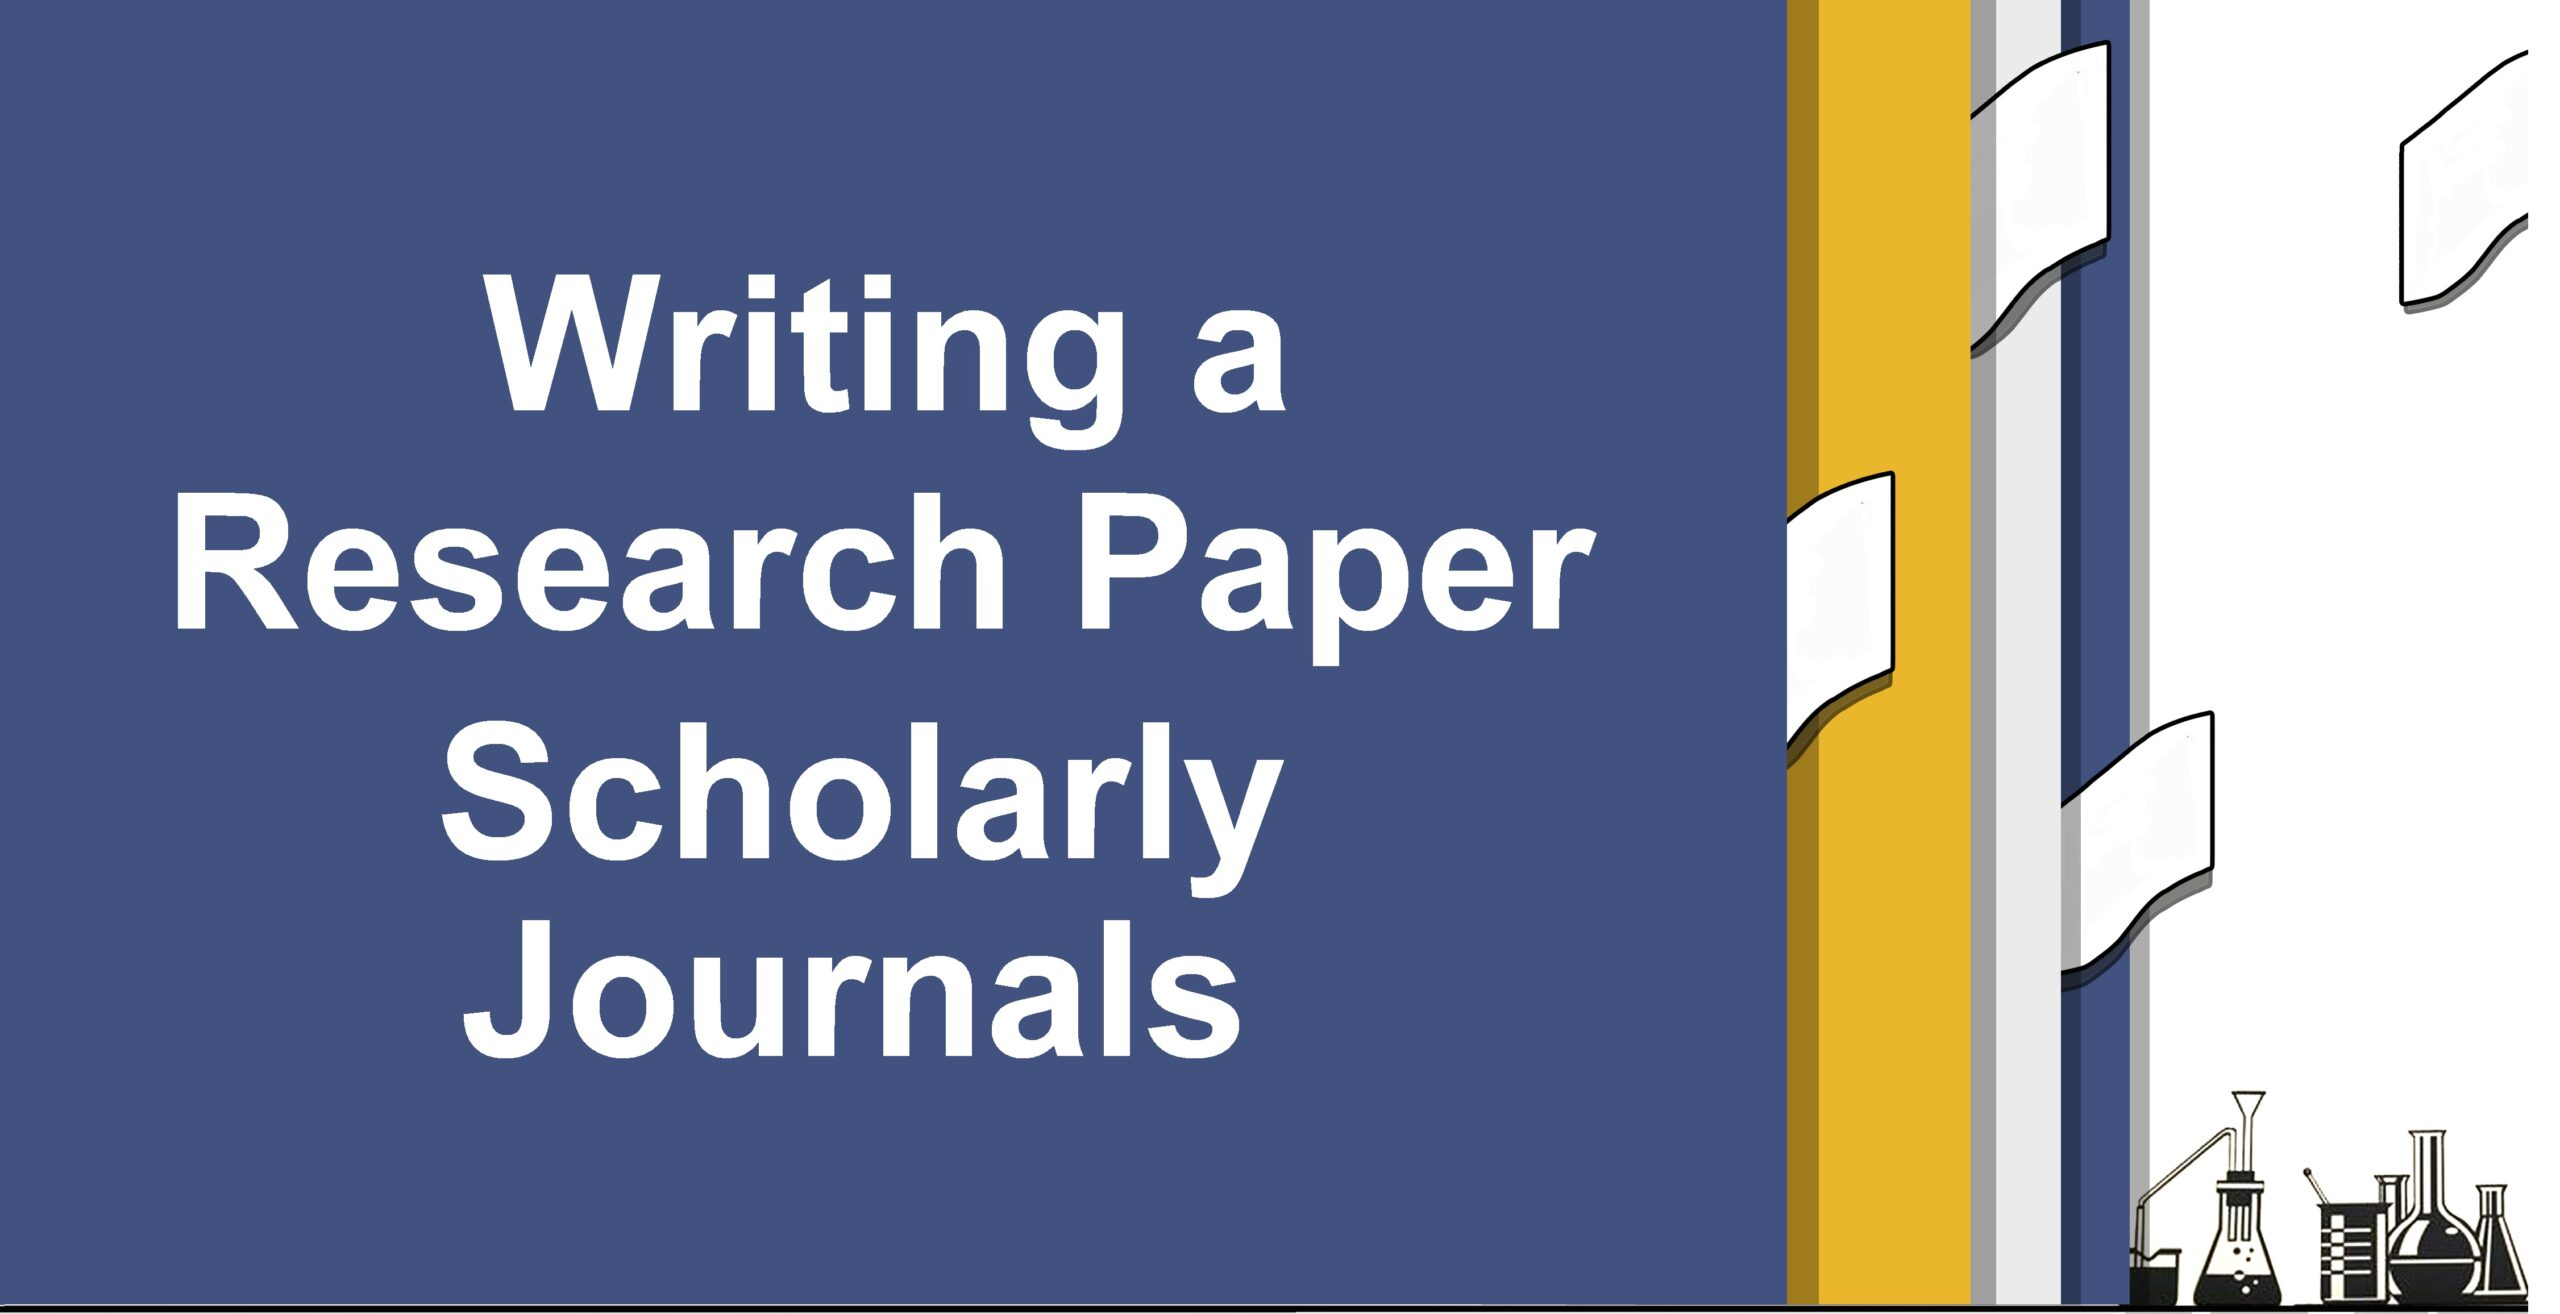 Writing a Research Paper for Scholarly Journals